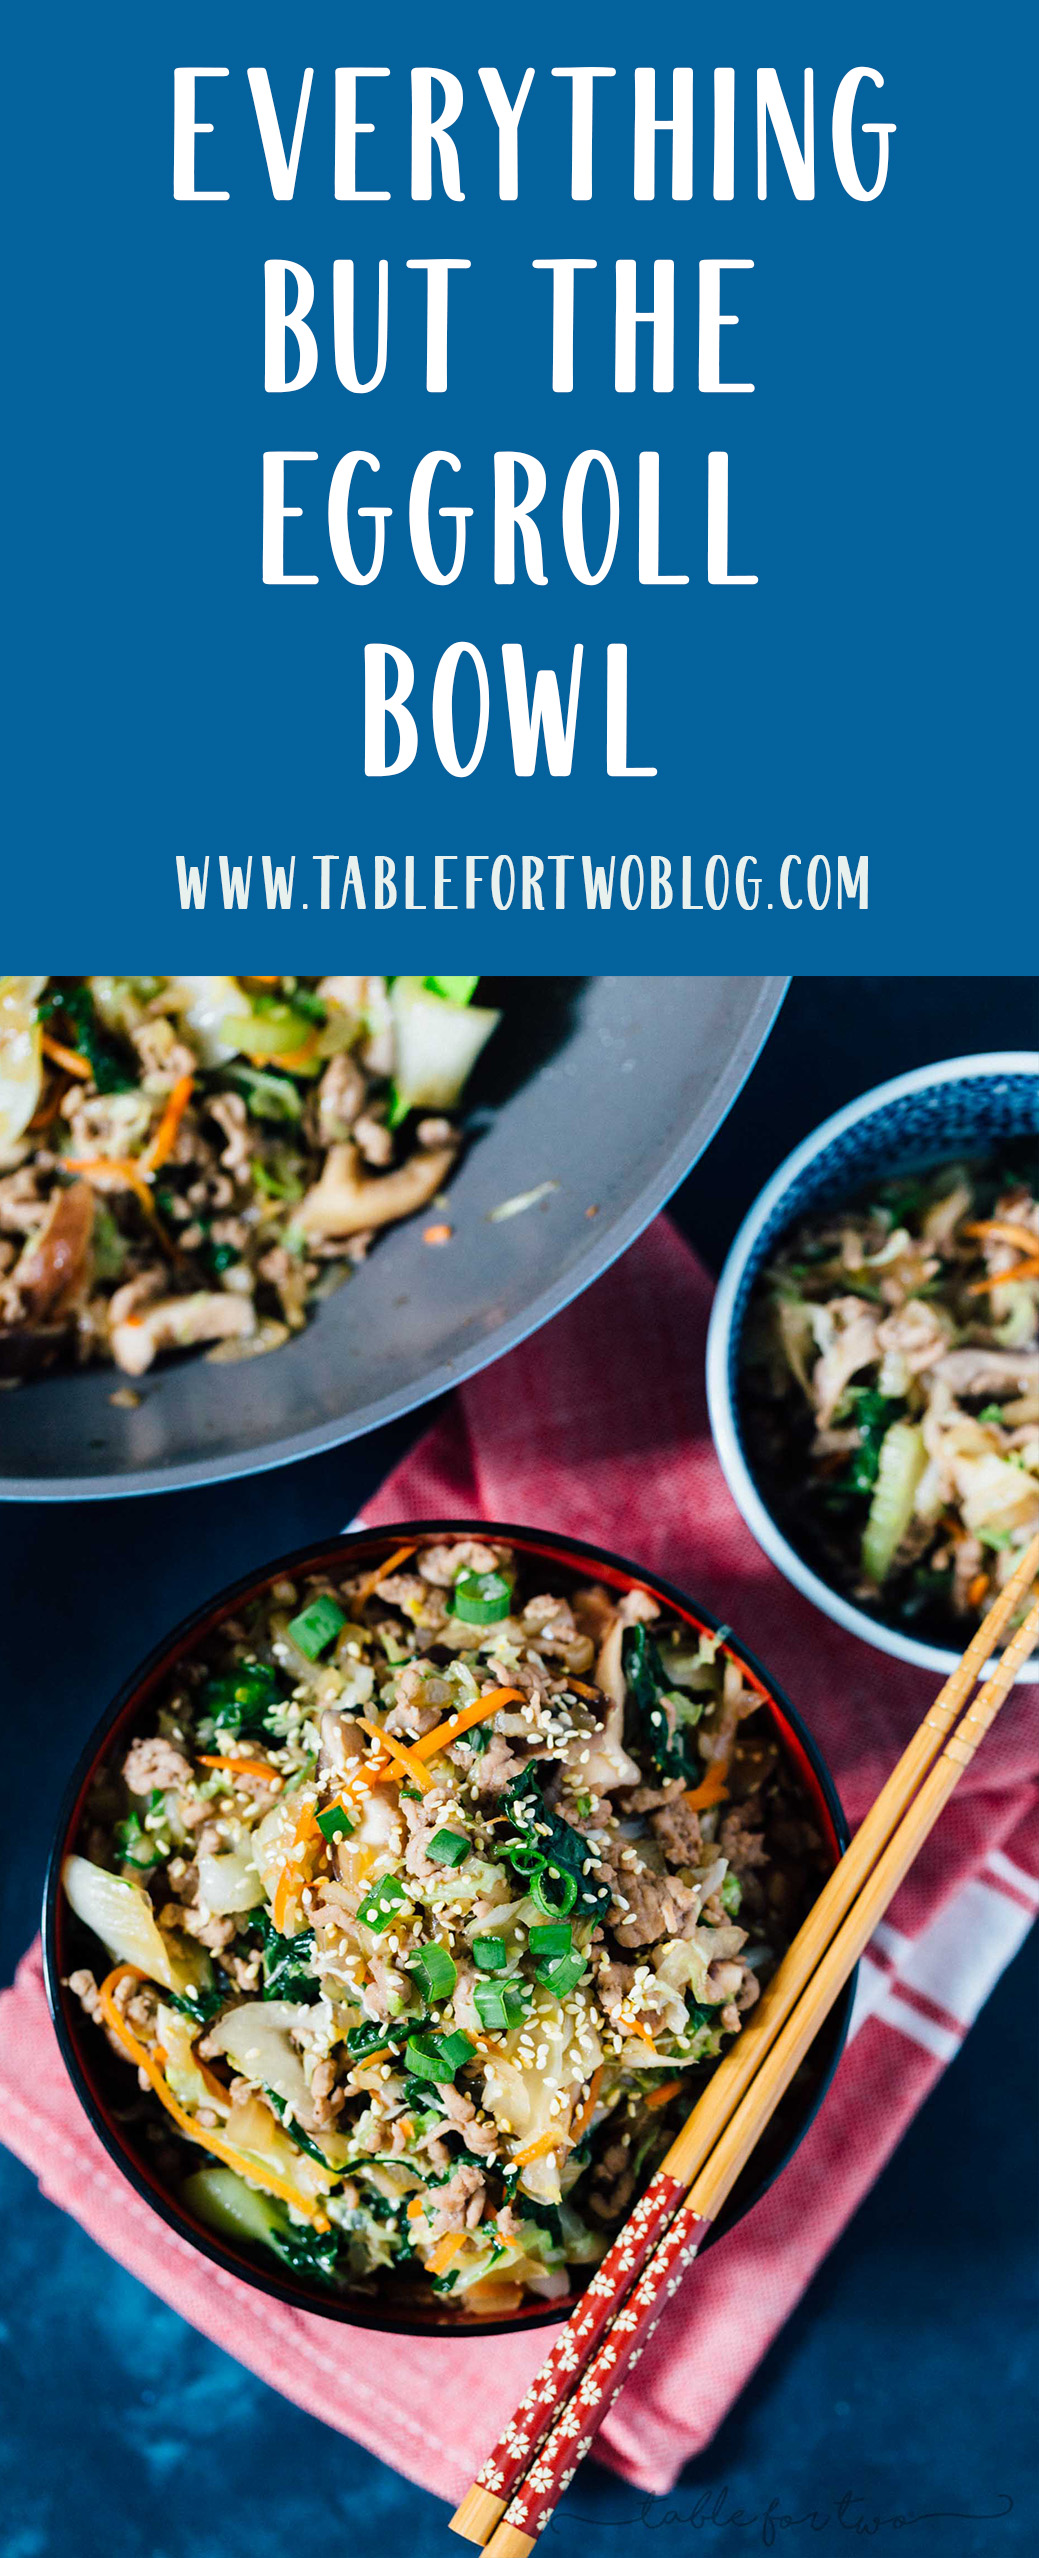 An eggroll in a bowl is your key to have all the eggroll filling you want! #eggrollbowl #eggroll #tablefortwoblog #chinesefood #asiancooking